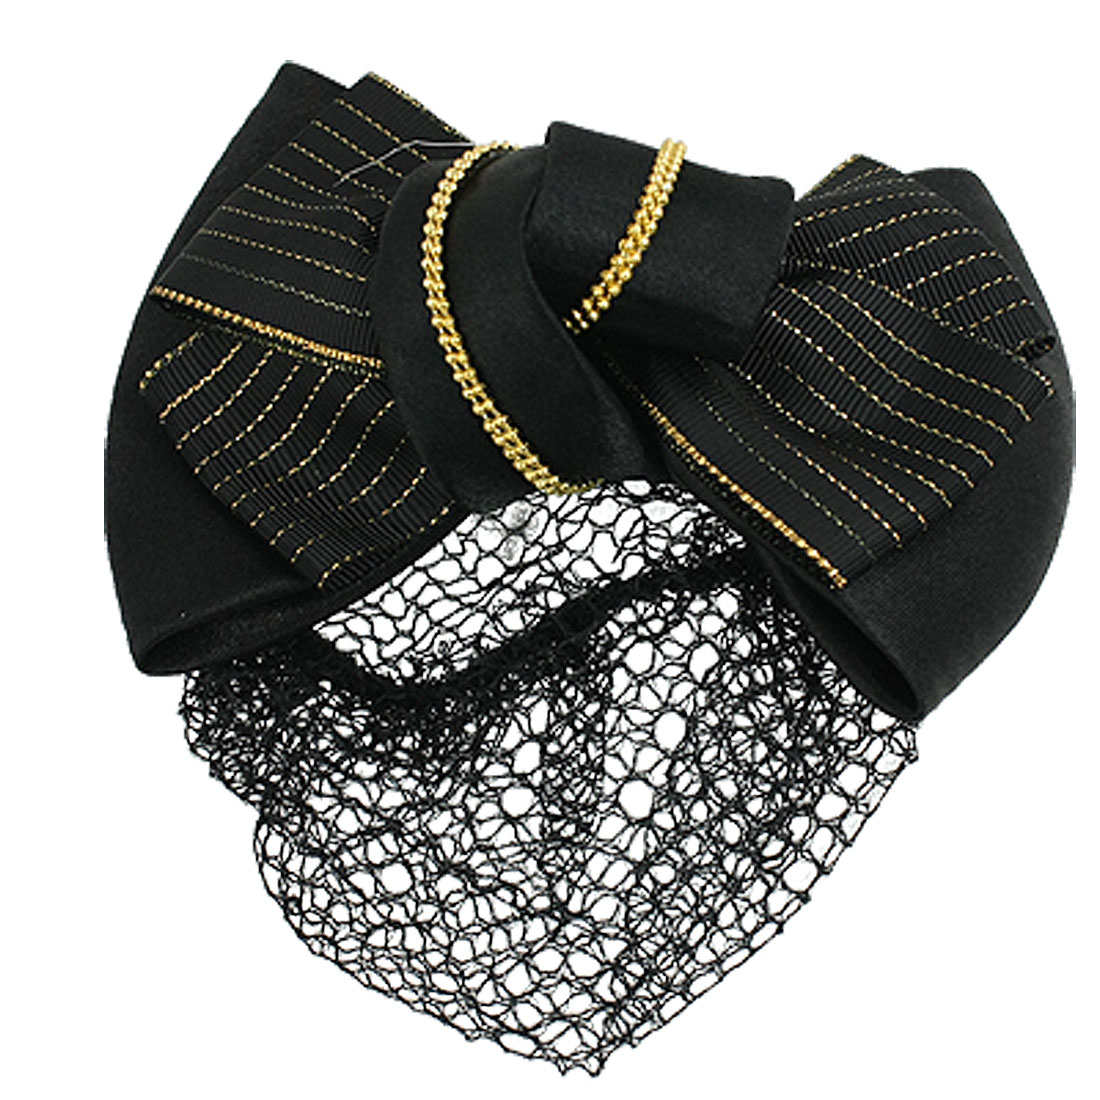 Women Snood Net Barrette Gold Tone Beads Decor Black Hair Clip